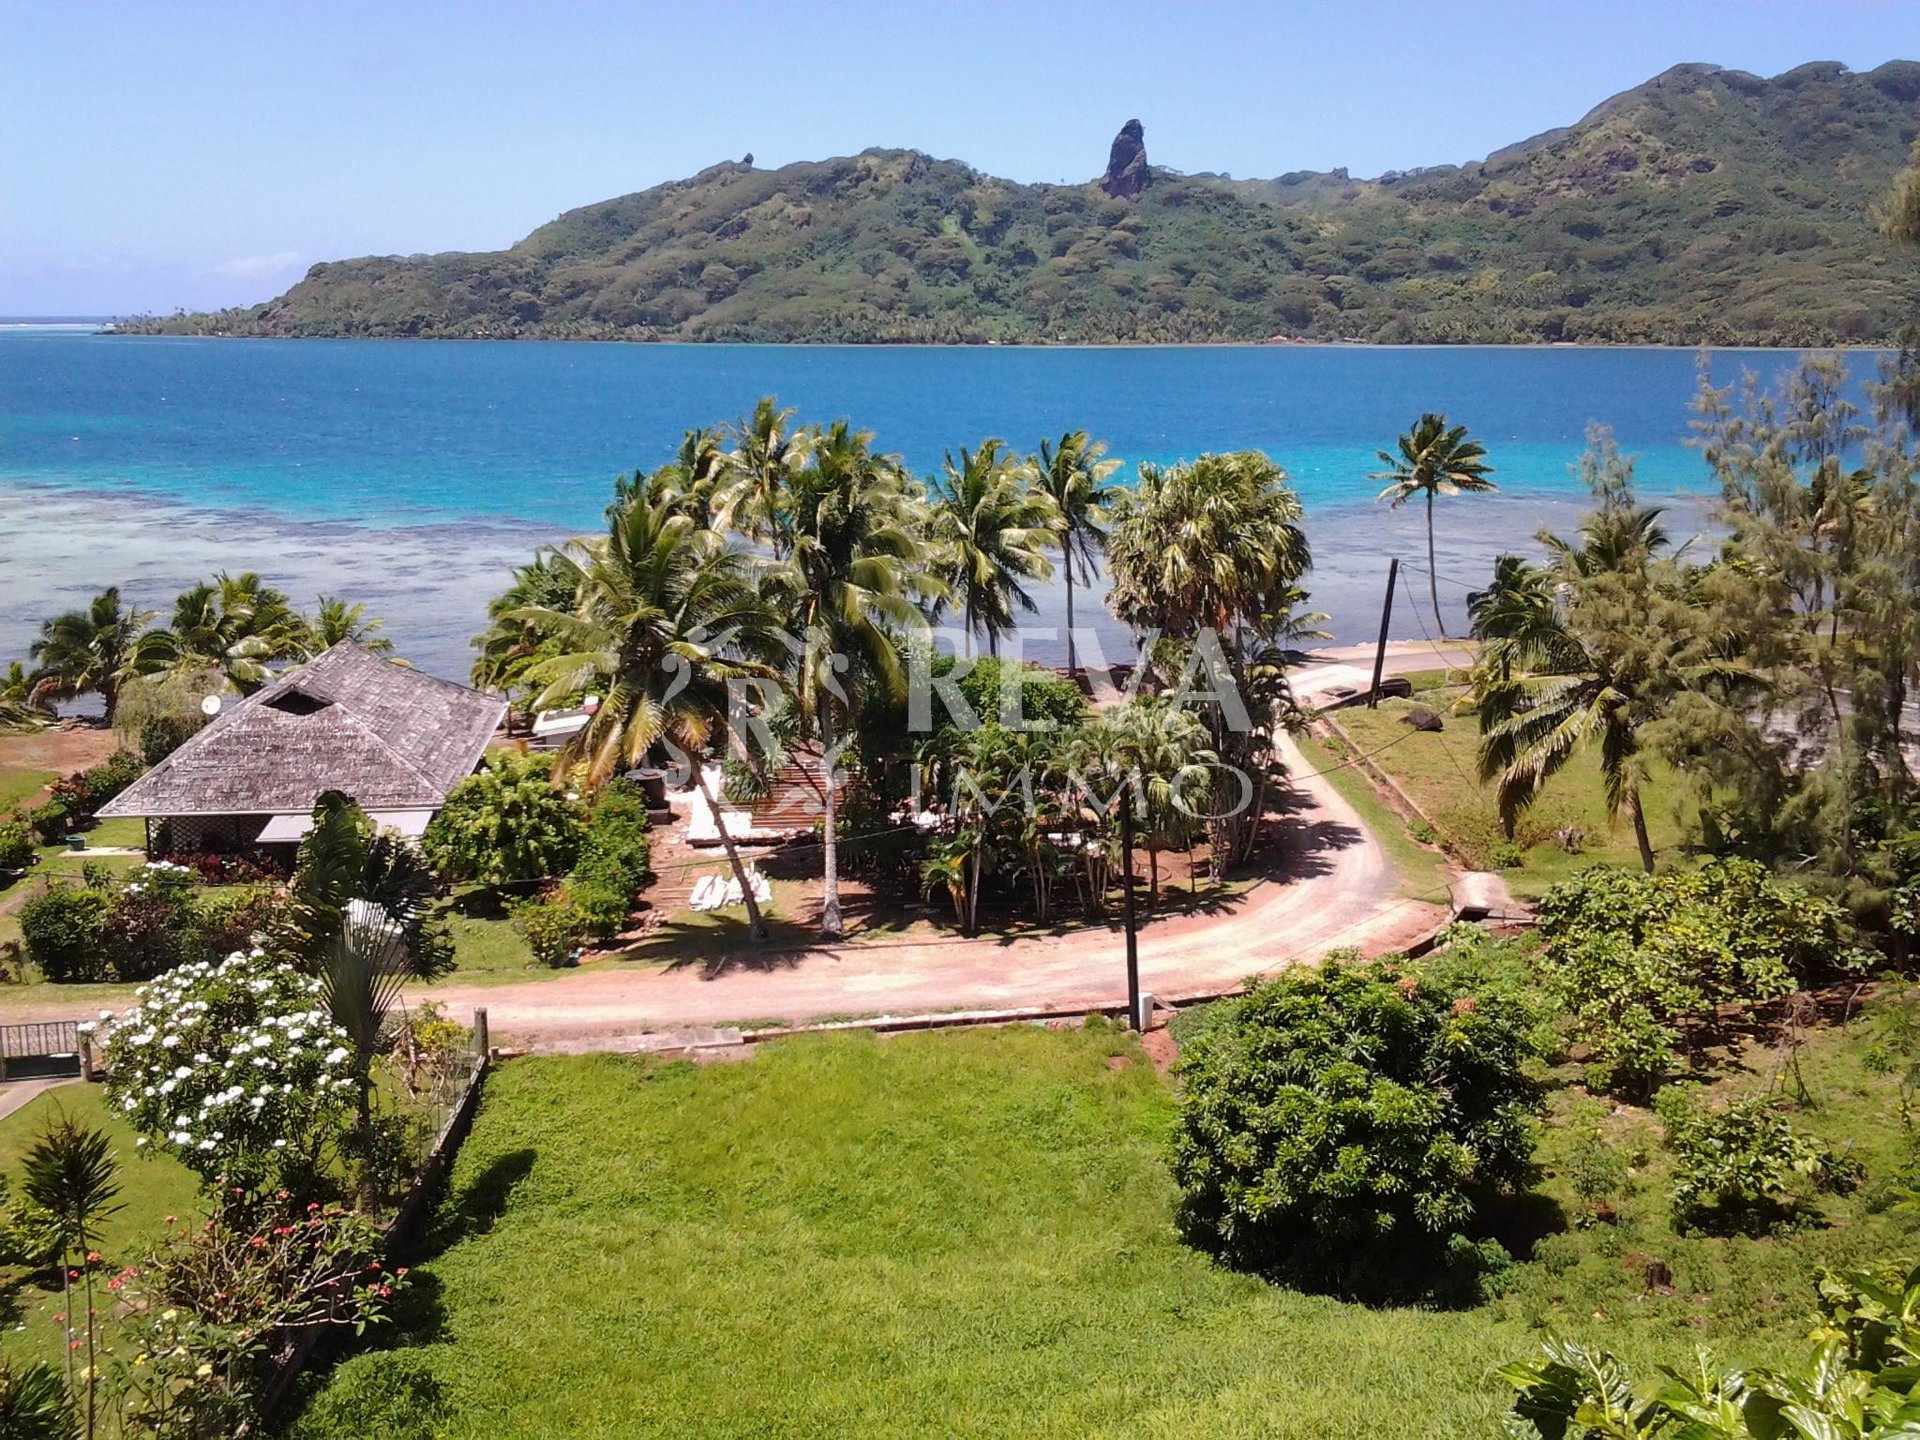 Sale Plot of land - Huahine - French Polynesia